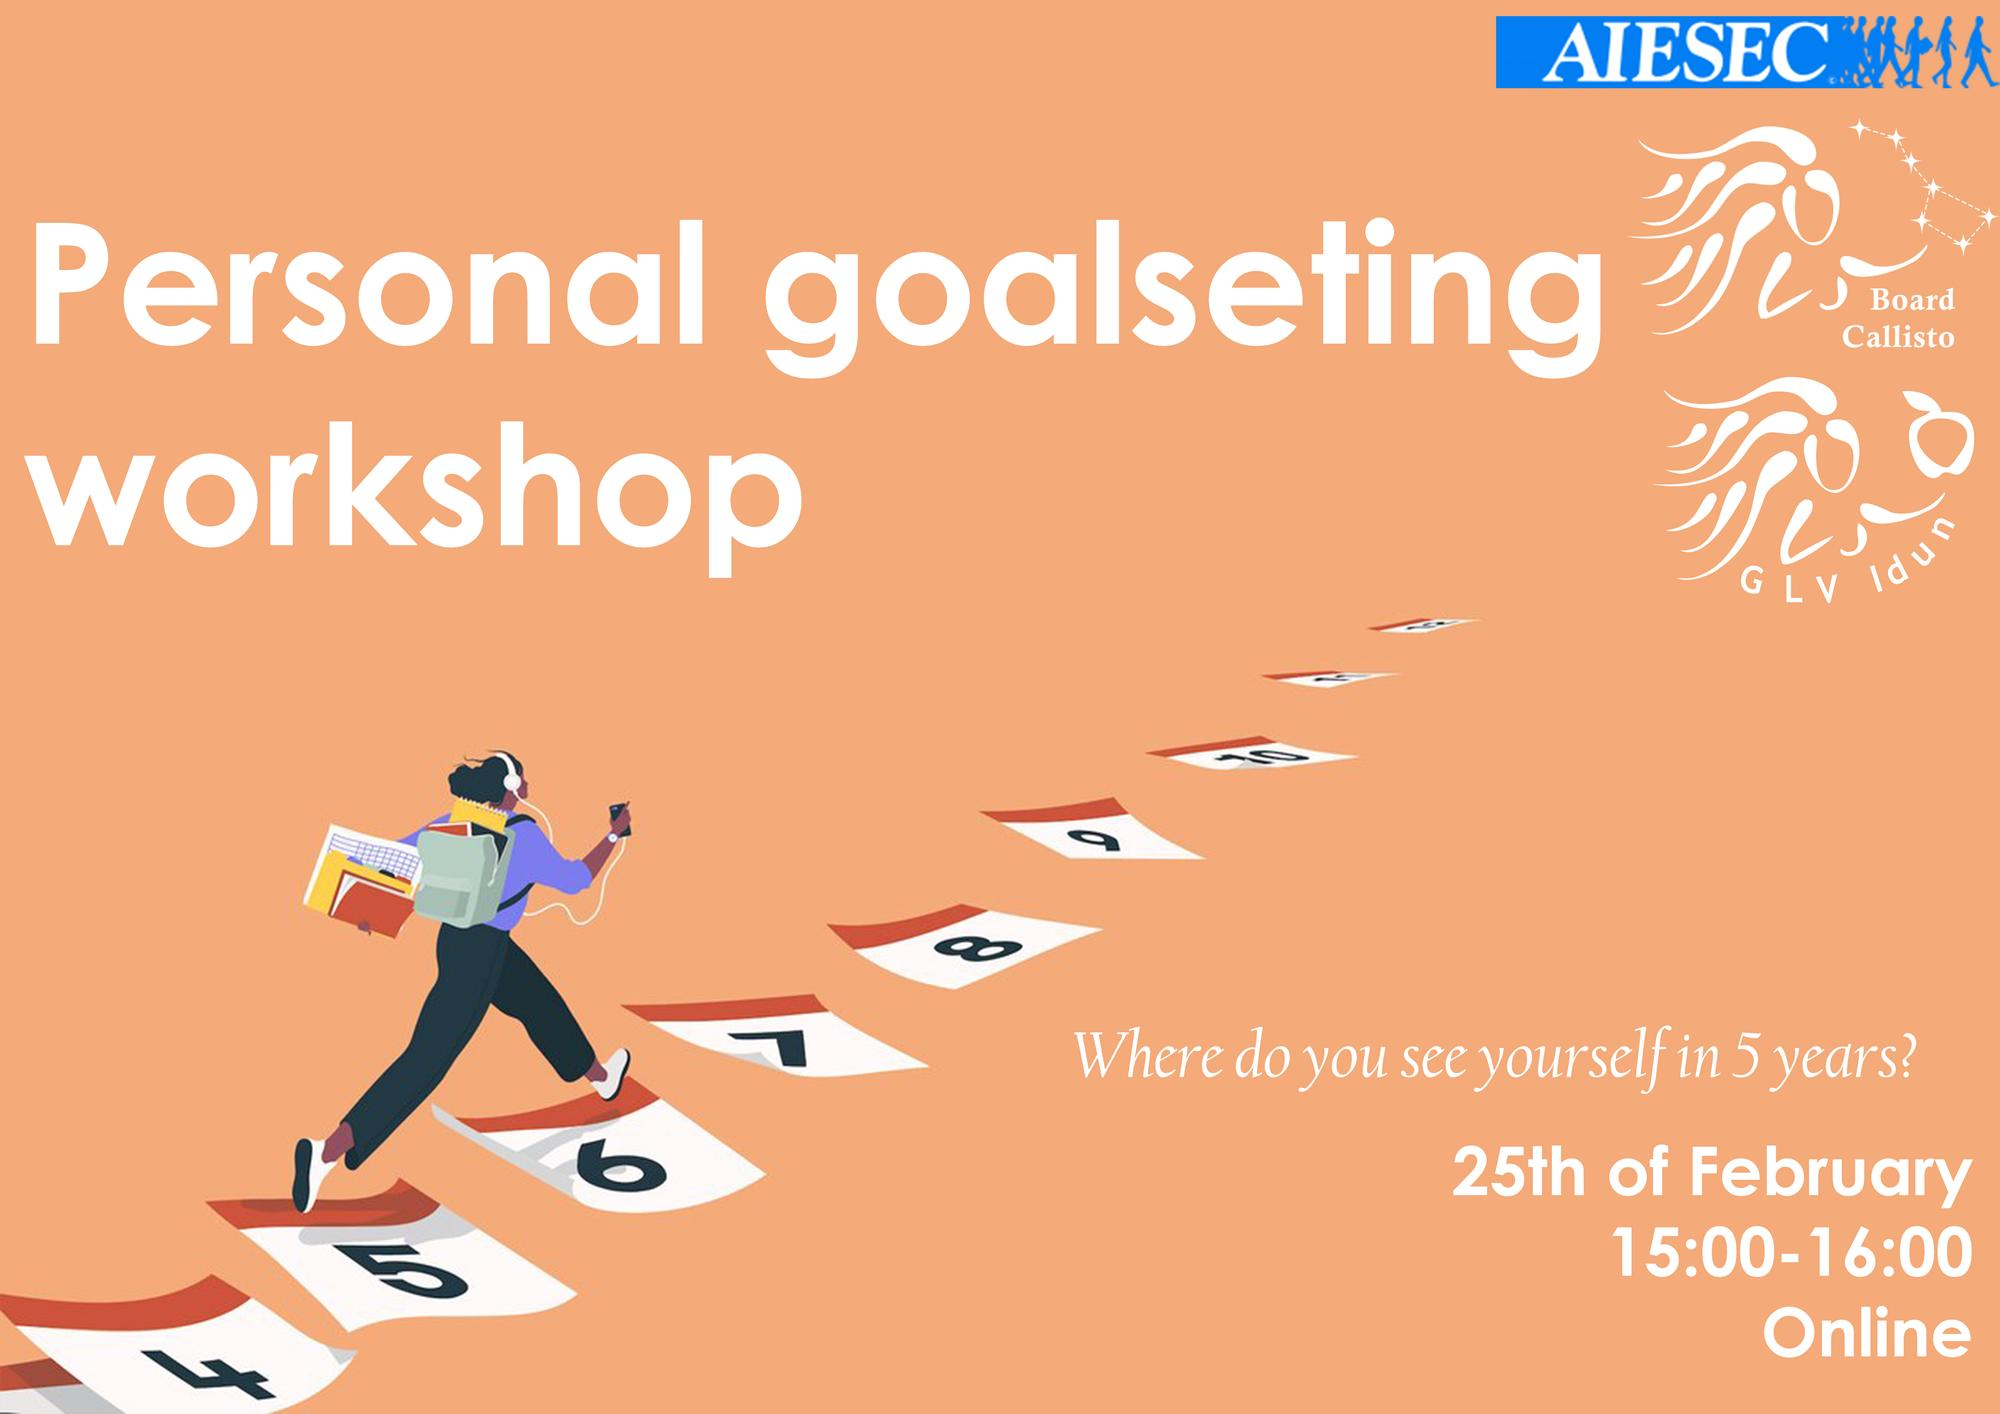 Personal Goalsetting Workshop